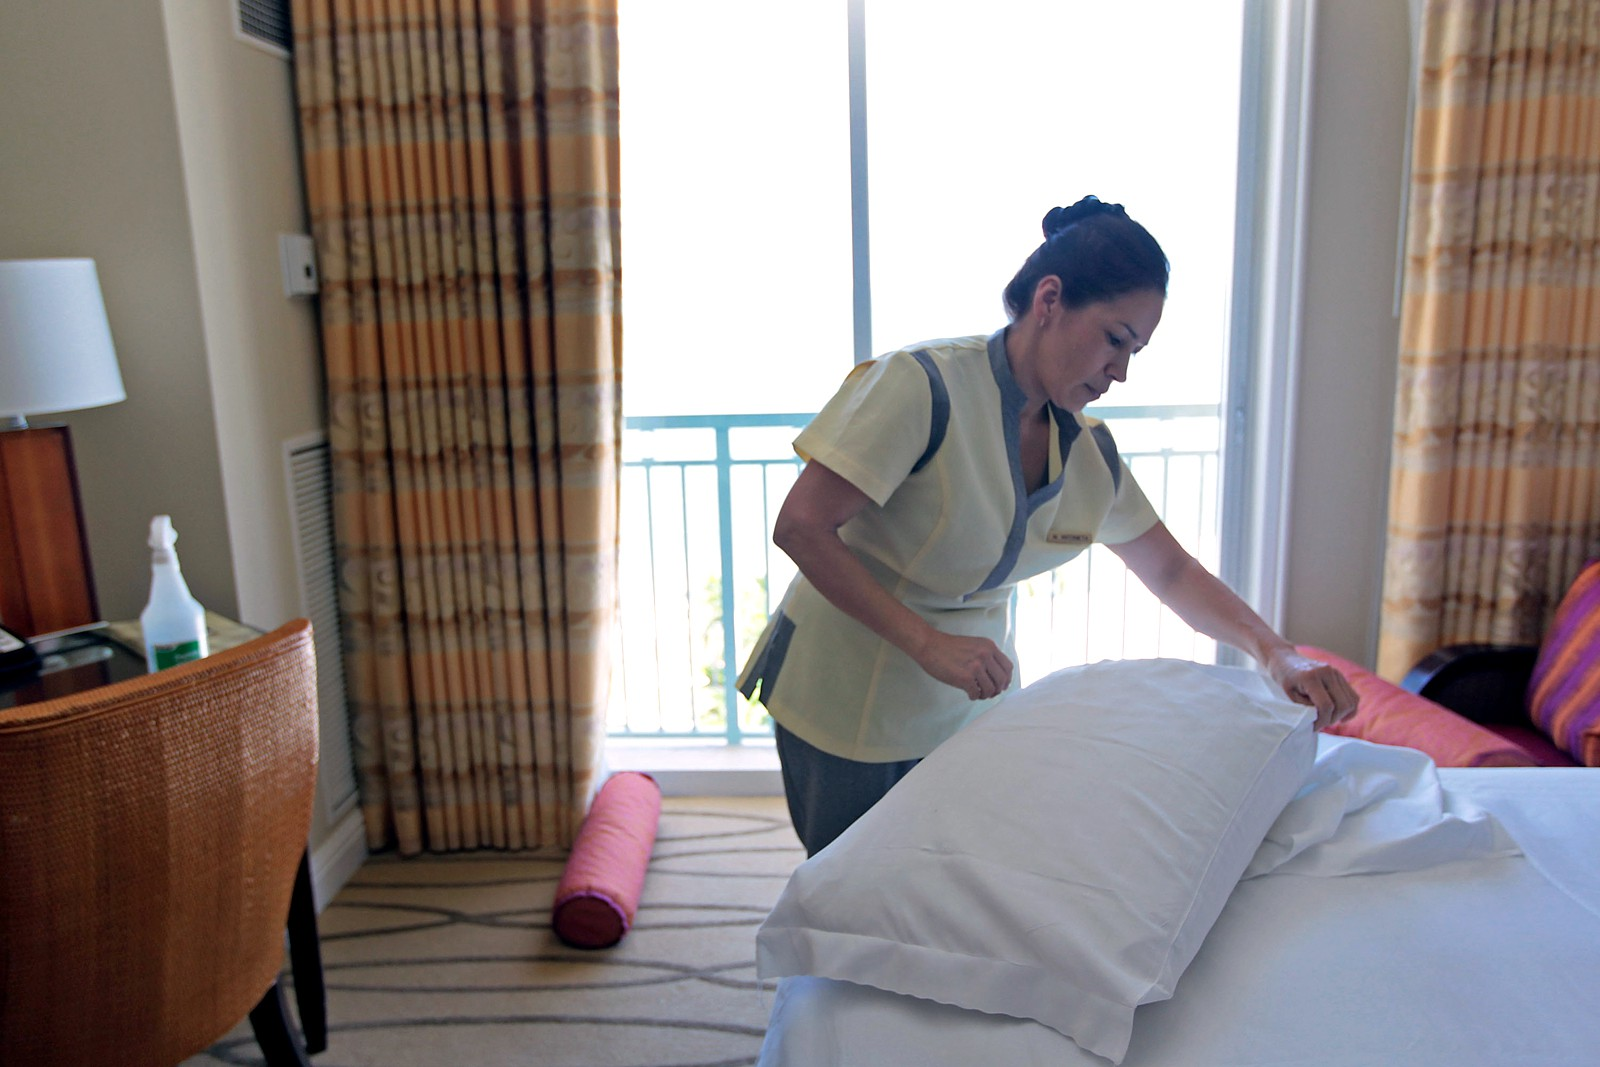 150224130621-tipping-hotel-housekeeping